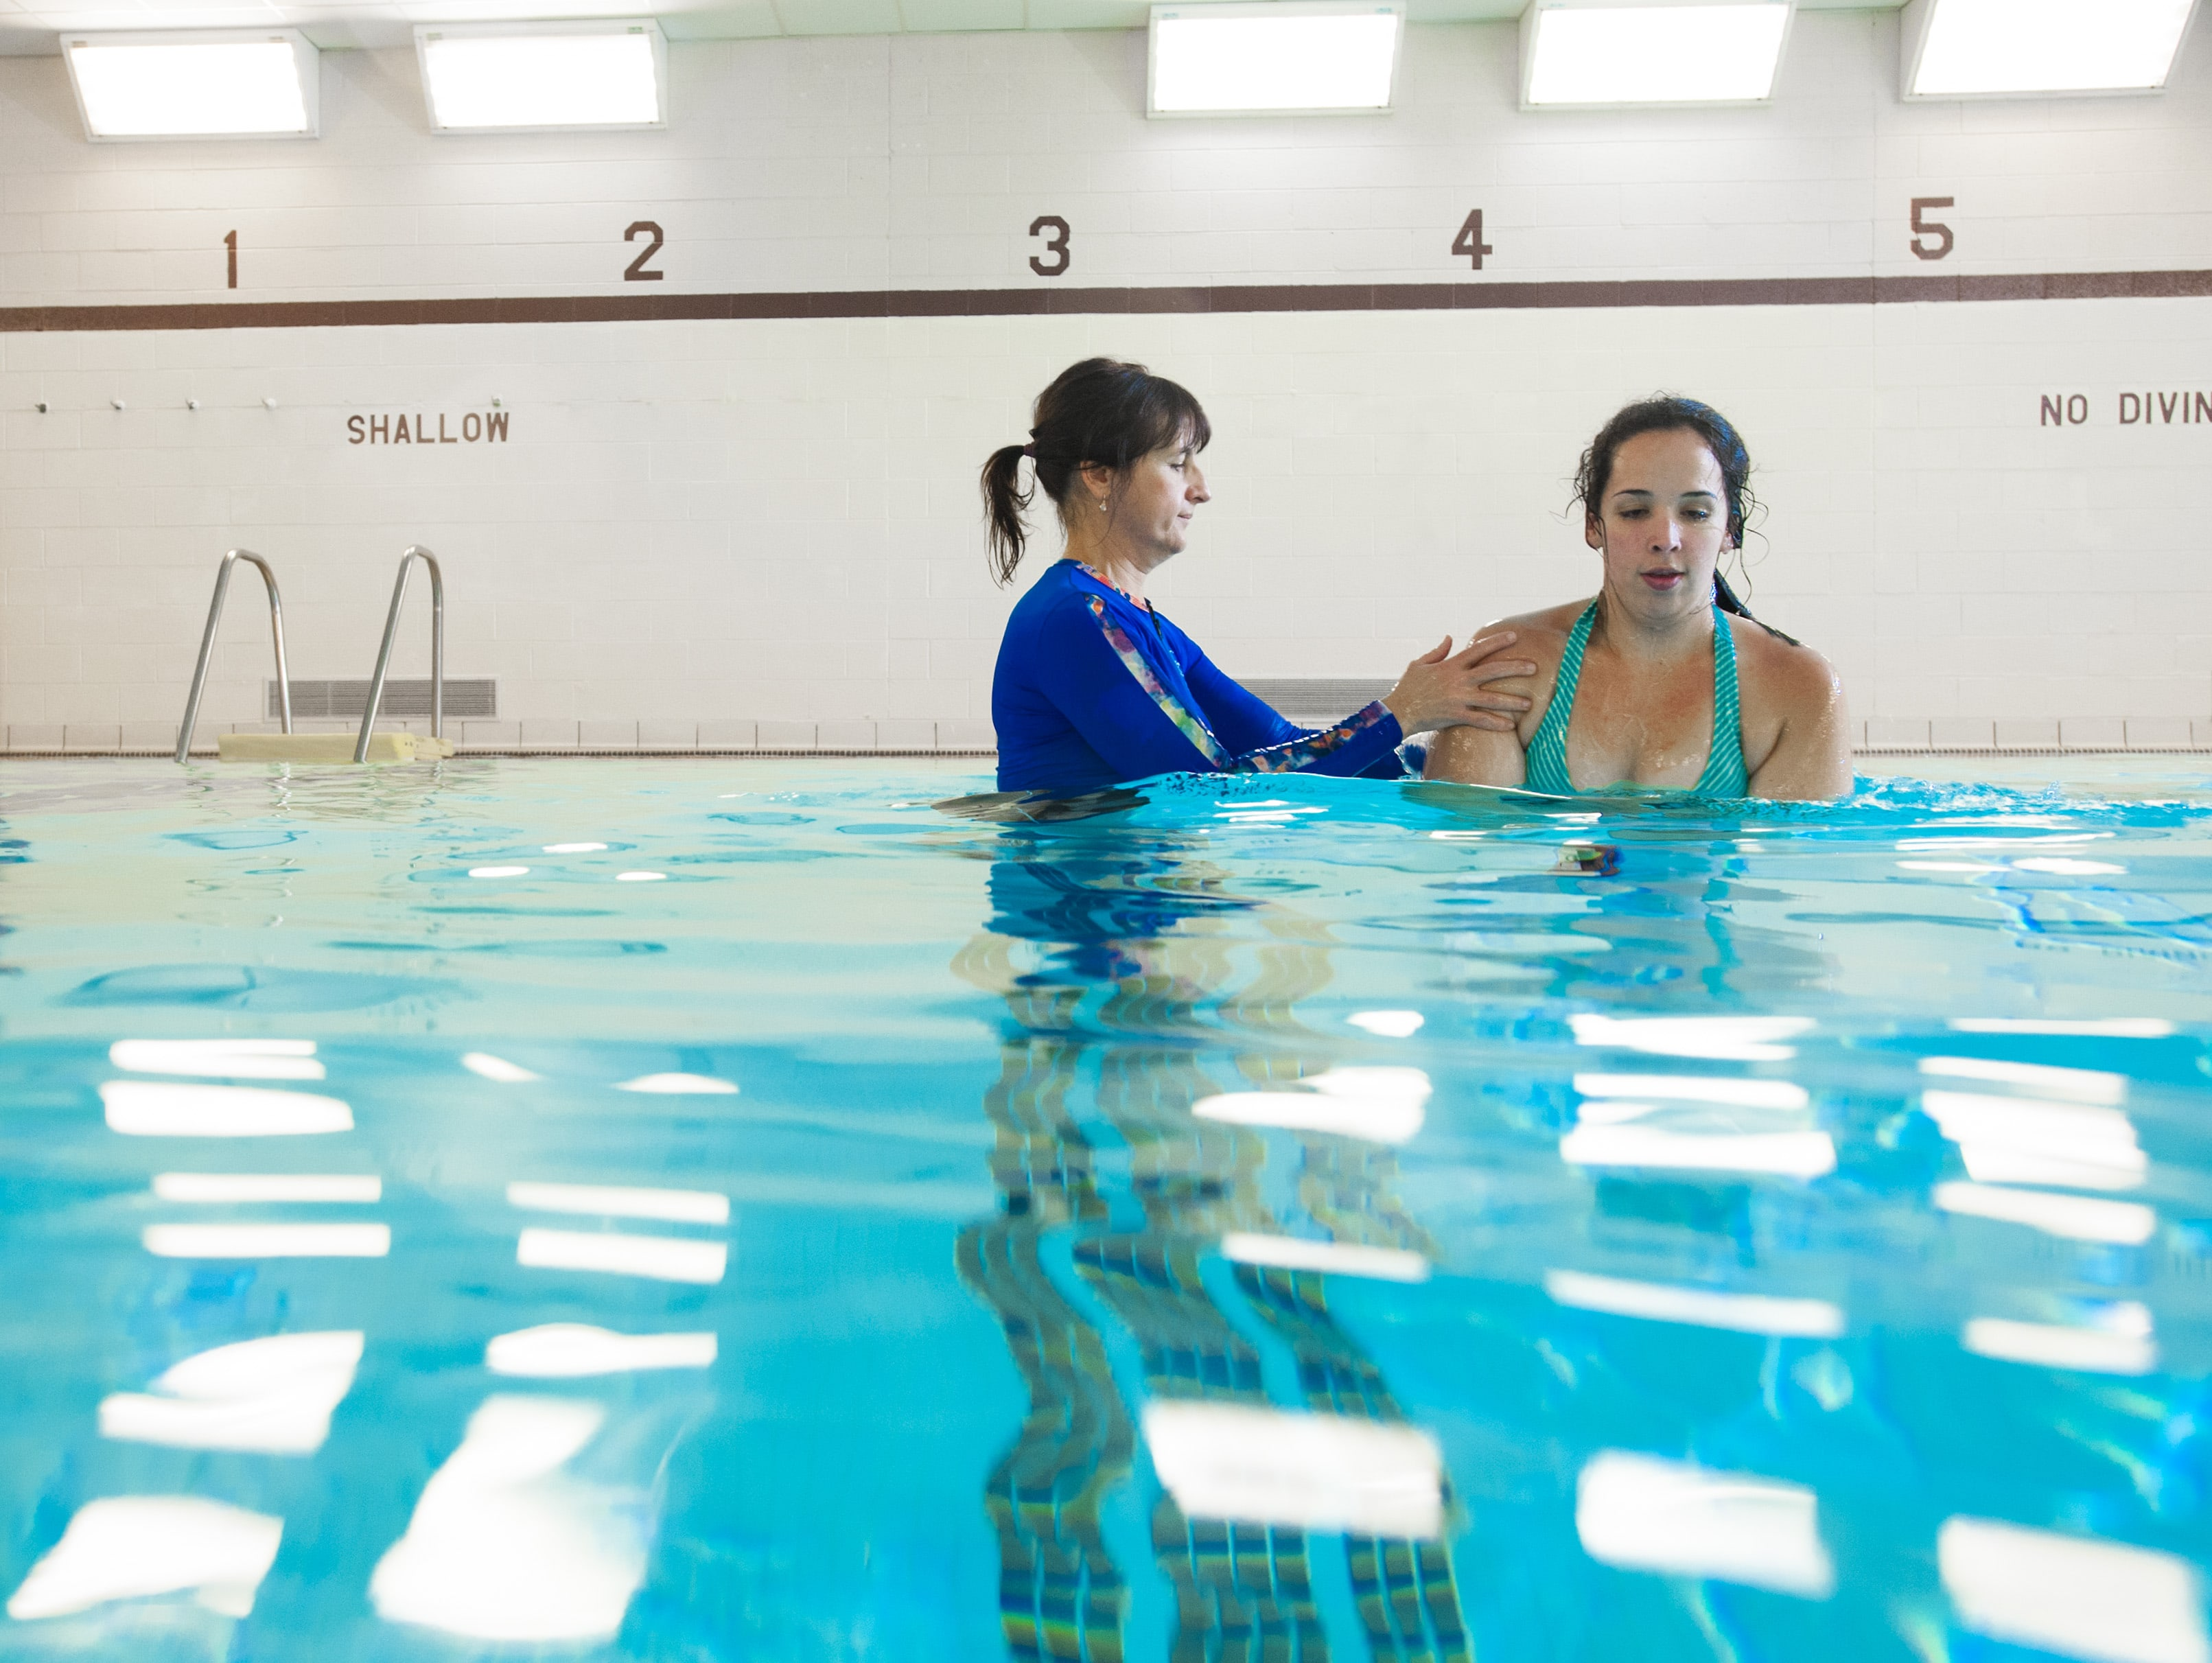 Aquatic Therapy (limited availability at this time)